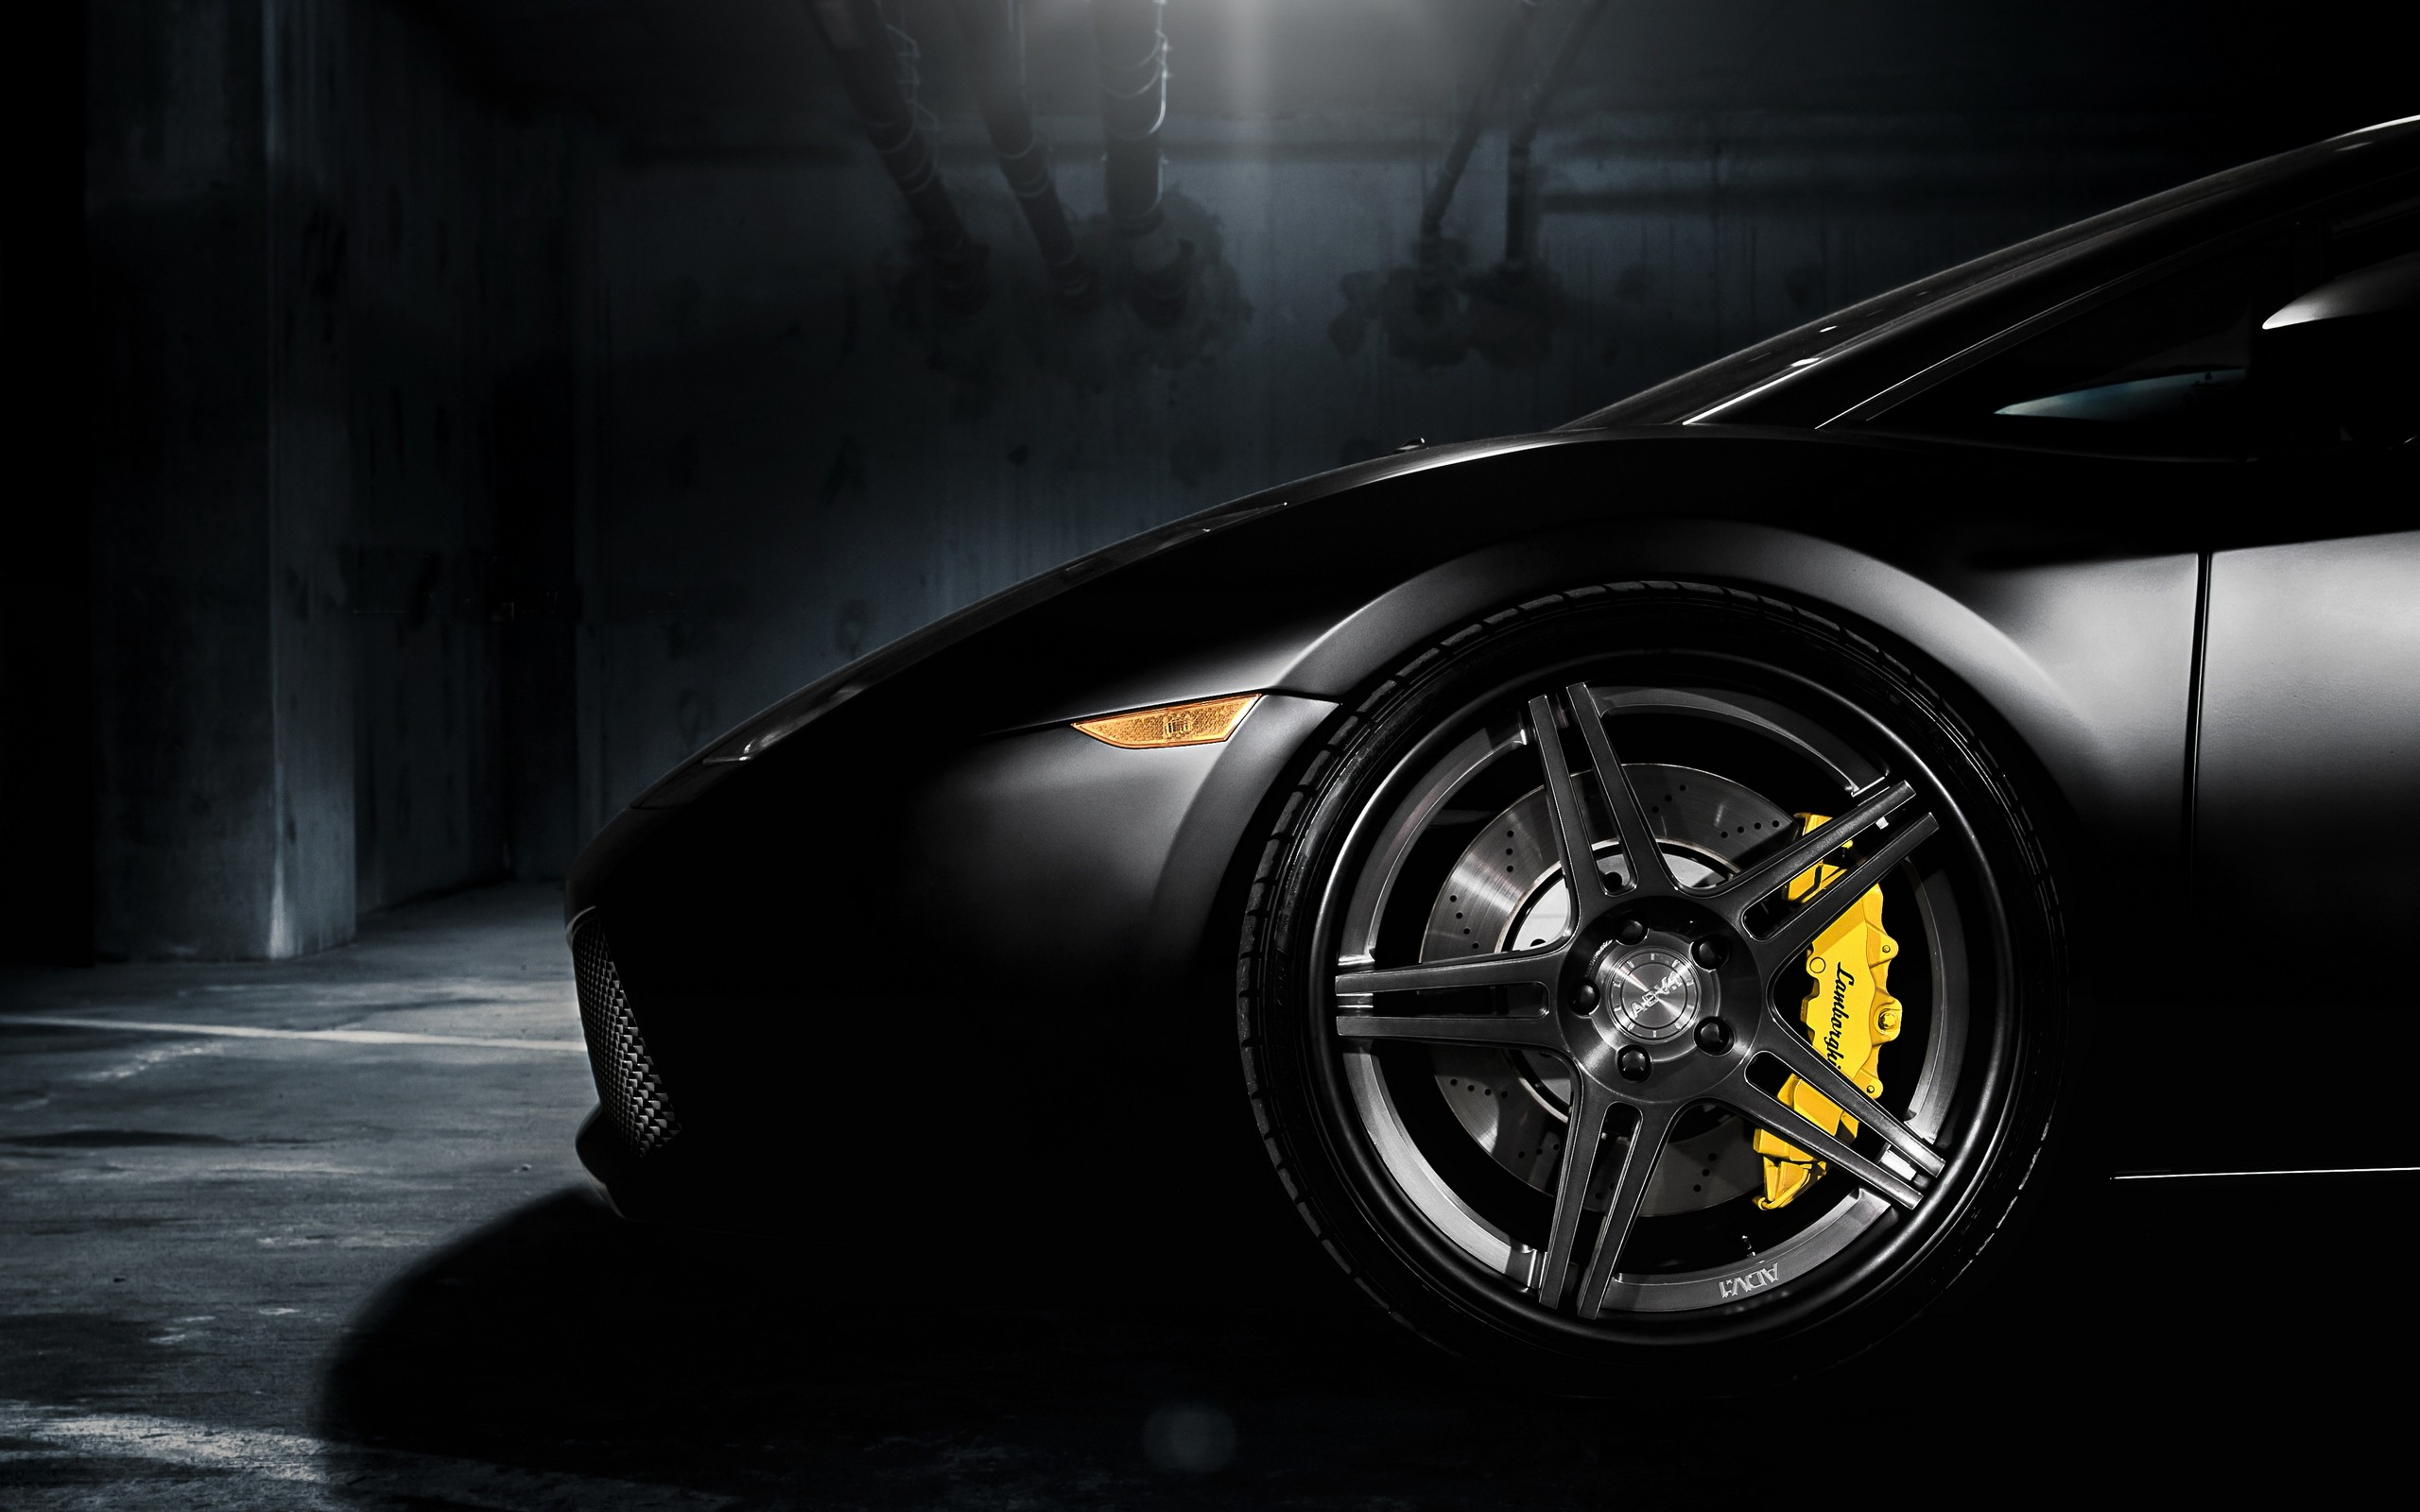 lamborghini Wallpaper Background 41260 2560x1600